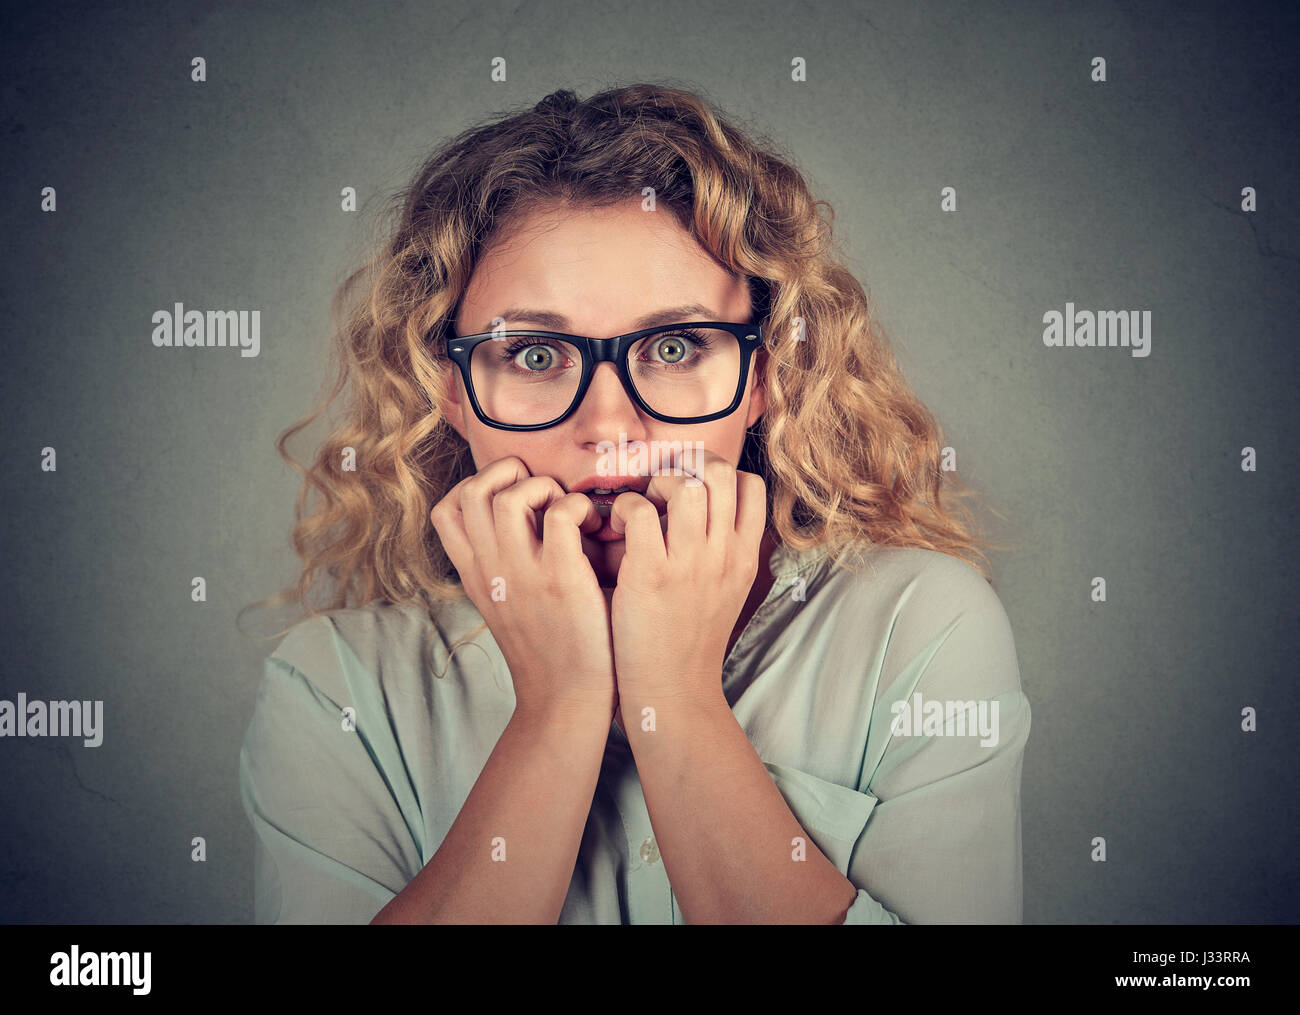 Closeup portrait nervous stressed young woman biting fingernails looking anxiously craving isolated gray background. - Stock Image